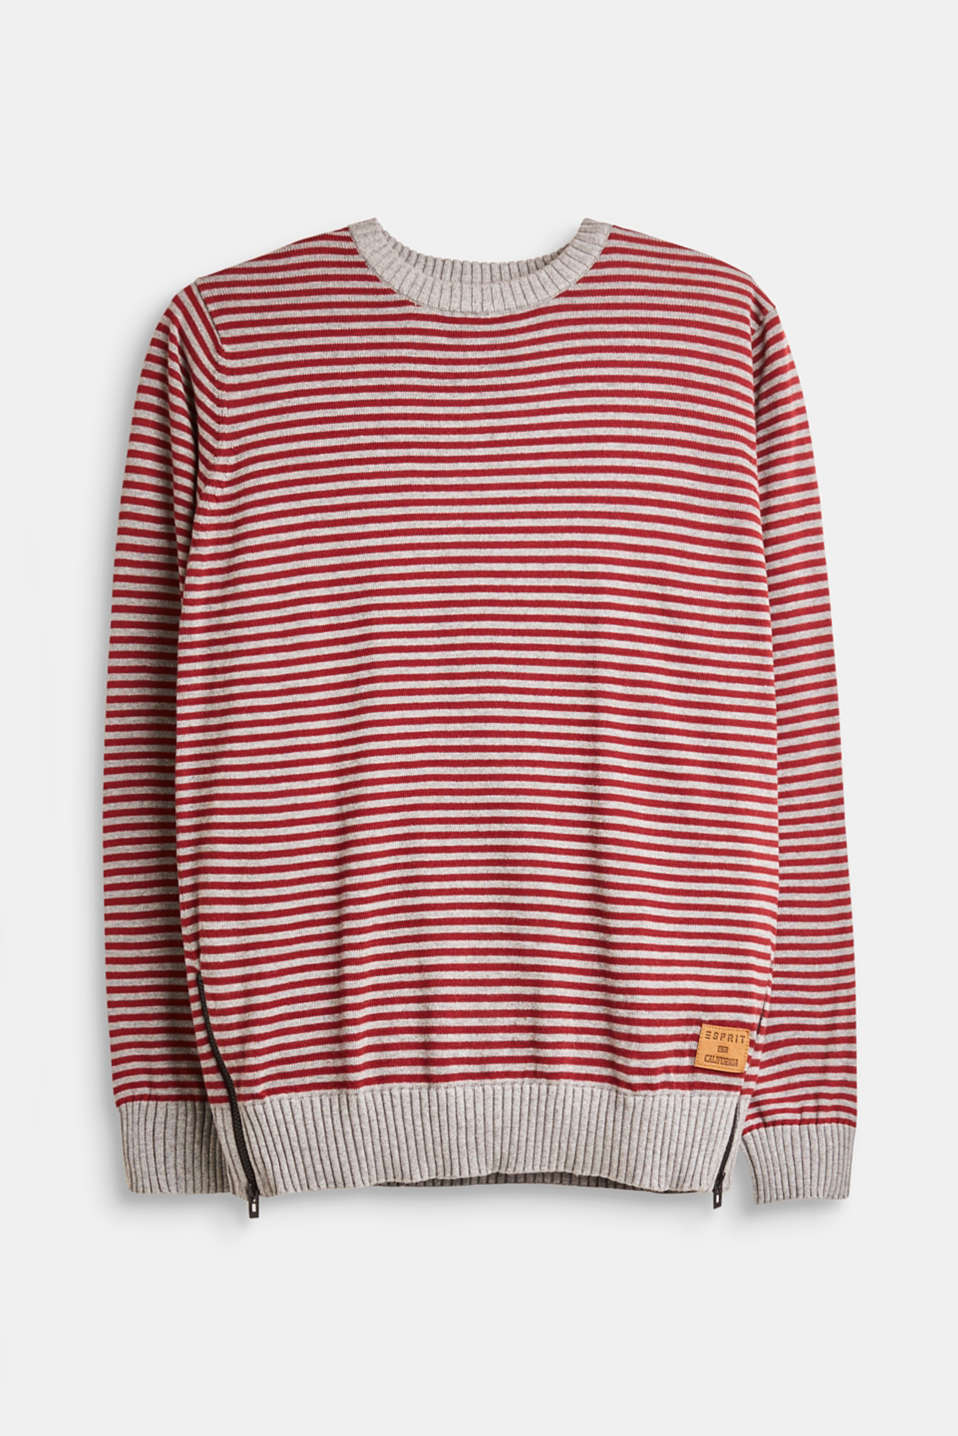 Esprit - Striped jumper in 100% cotton